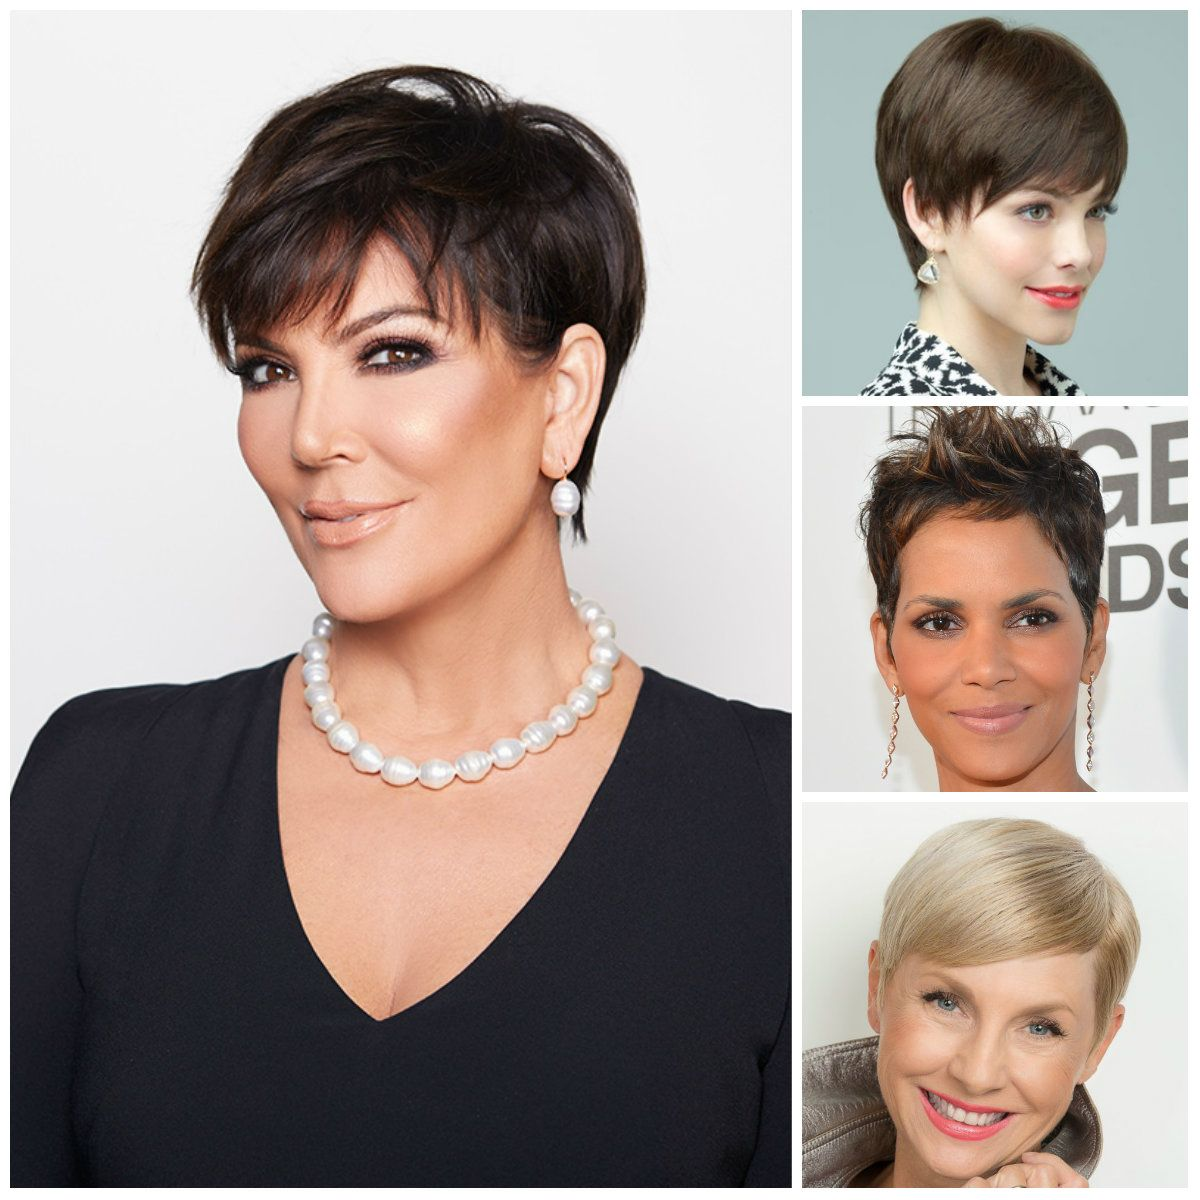 Long hair trendy haircuts hairstyle pinterest trendy haircuts hottest pixie haircuts for older women winobraniefo Images